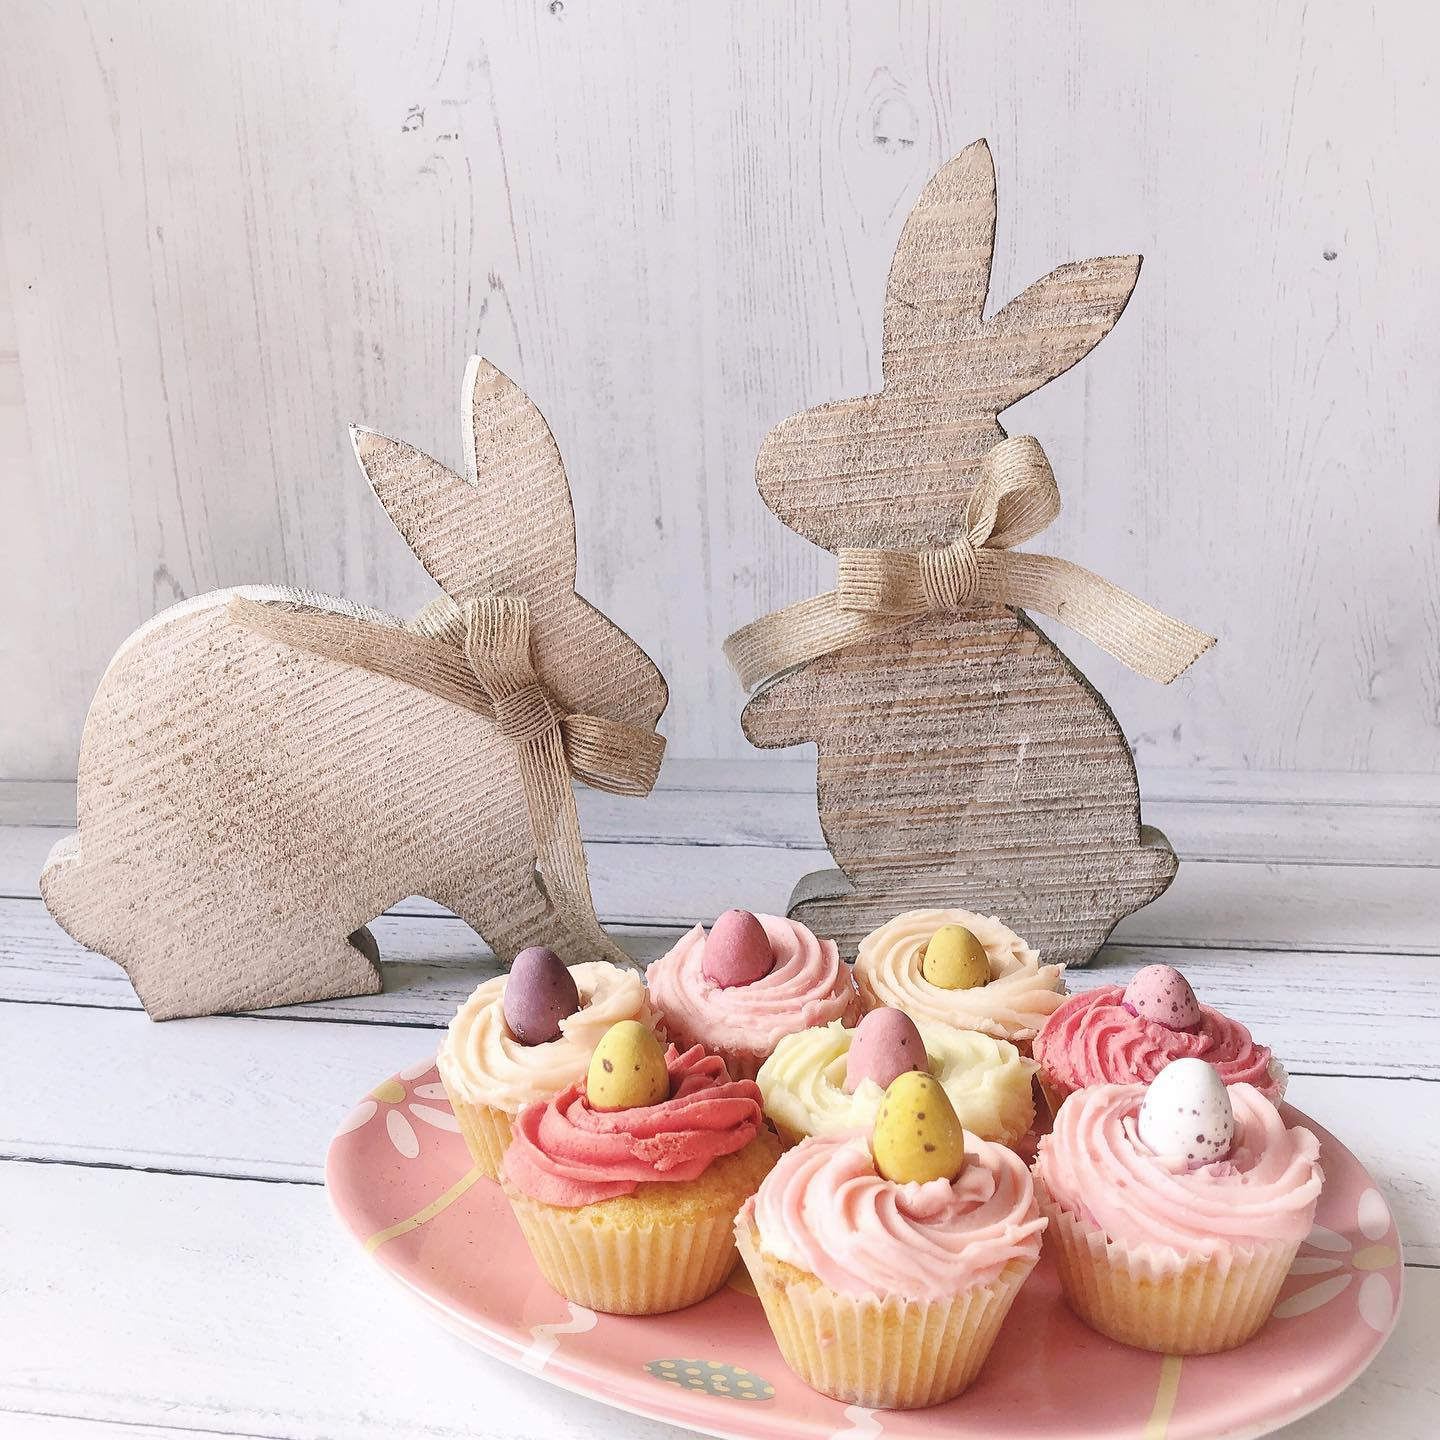 Wee buns for Easter